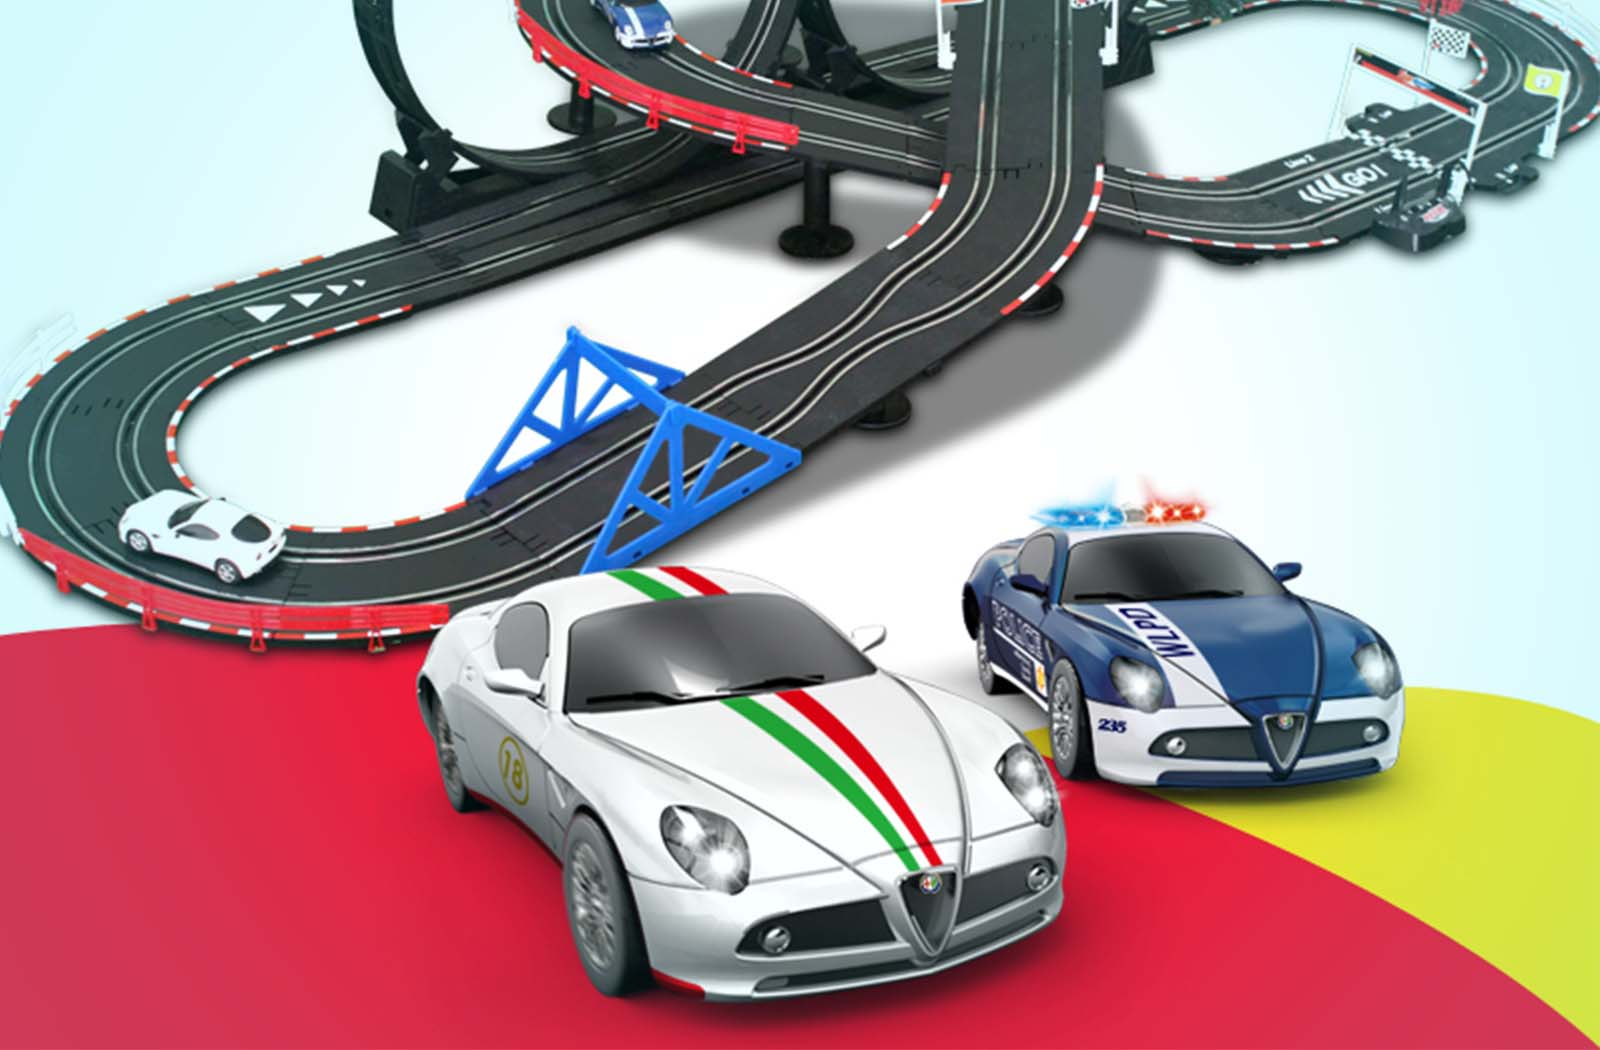 Best Slot Car Racing Sets